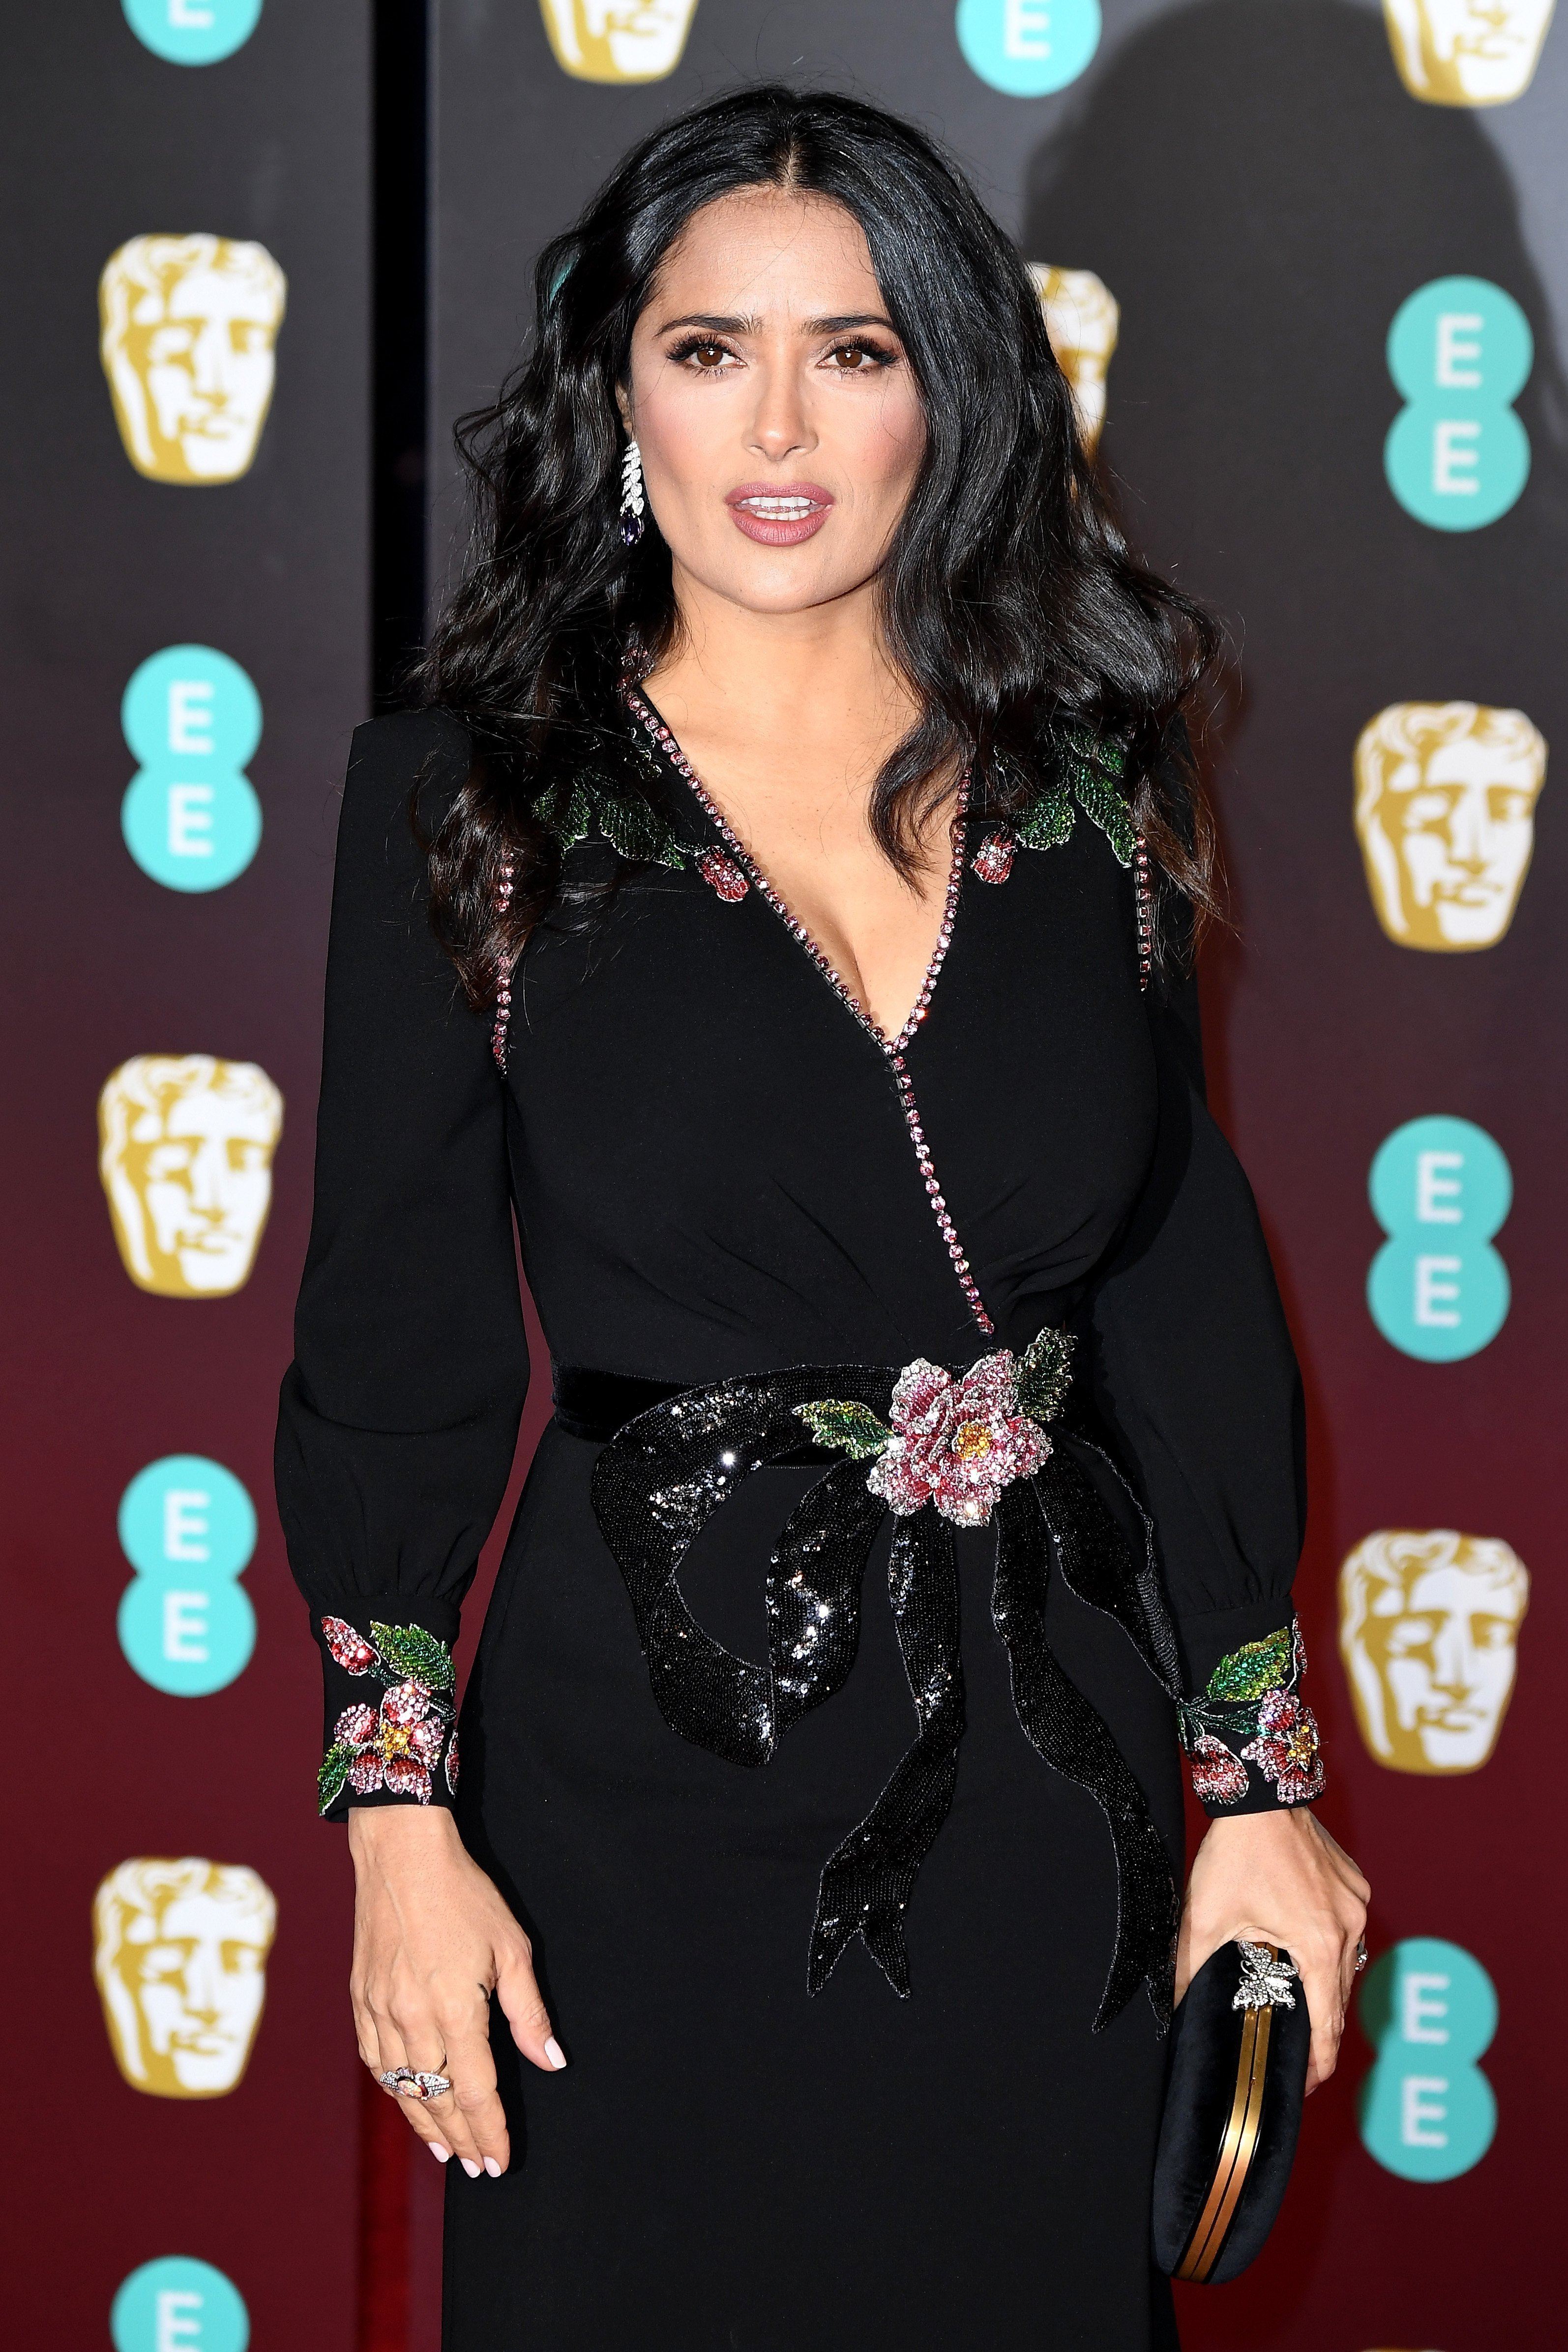 Salma Hayek attends the EE British Academy Film Awards (BAFTA) held at Royal Albert Hall on February 18, 2018, in London, England. | Source: Getty Images.